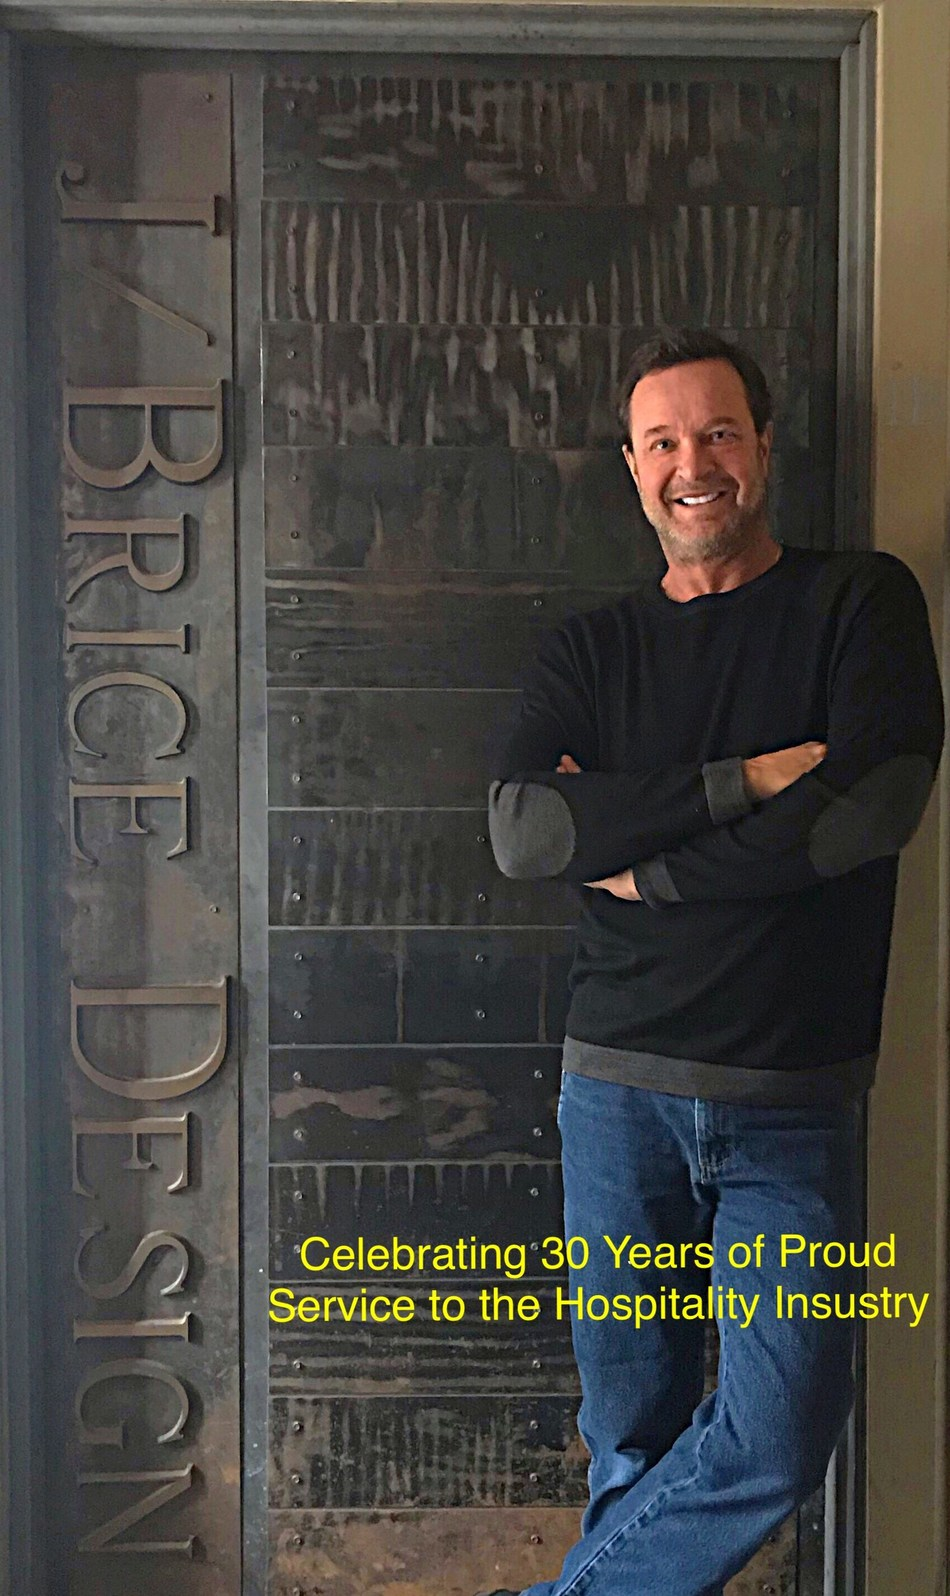 Jeffrey Brice Ornstein, founder and CEO of J/Brice Design International, celebrates the 30th anniversary of the hospitality design firm he founded in Boston in 1989. Since its founding, J/Brice Design has been widely heralded for its contribution to establishing the Arab world as a luxury destination.